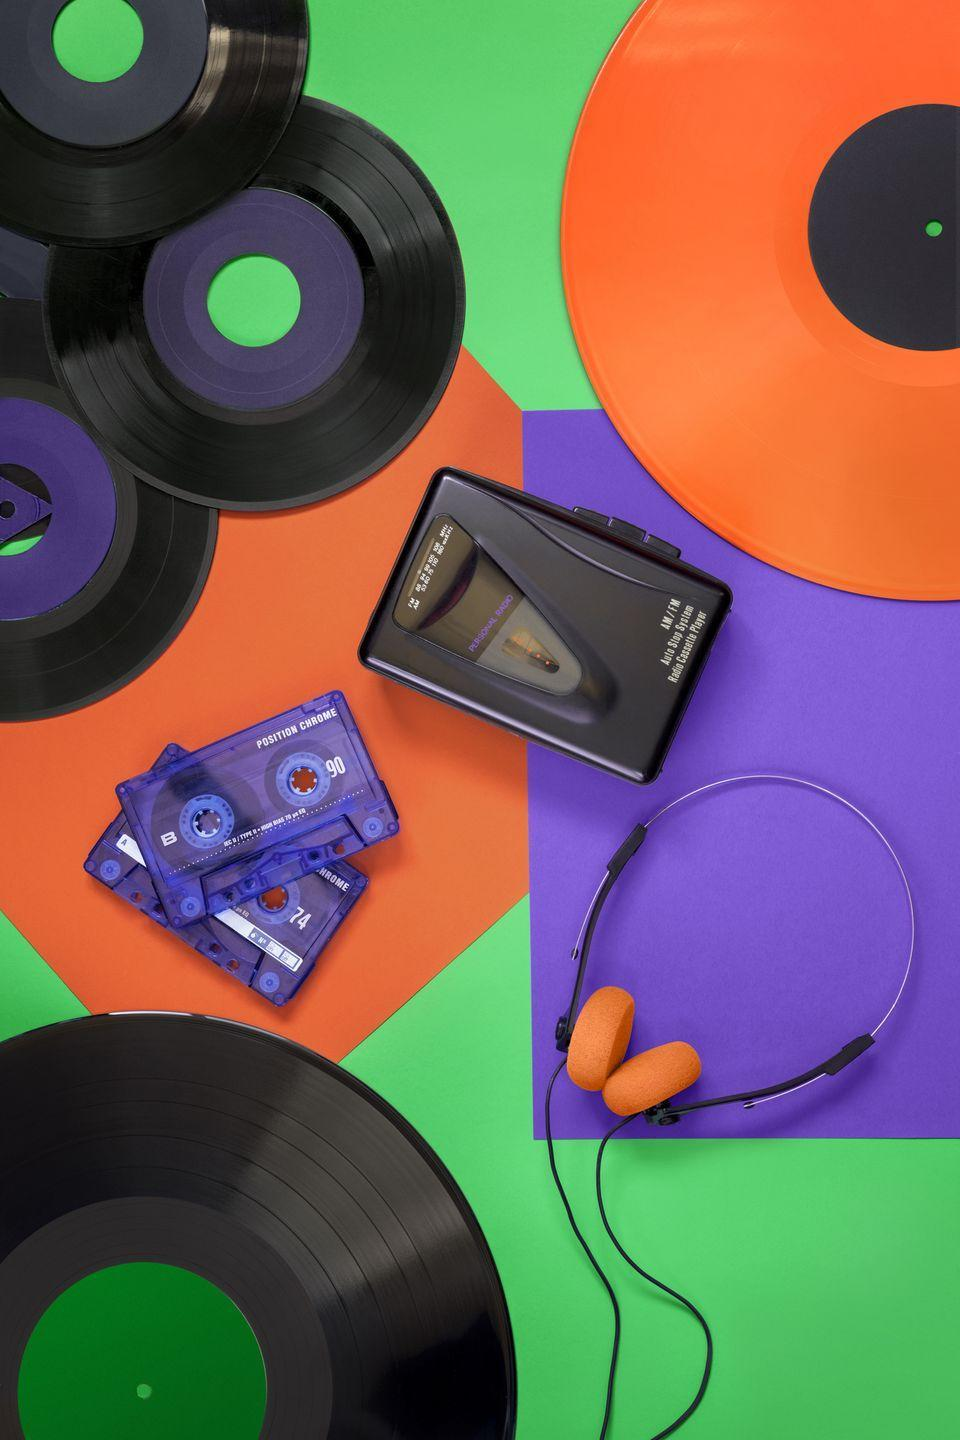 "<p>You were in your prime as a 20-something in the '90s so why not throw it back with a '90s night? Party time, excellent! </p><p><a class=""link rapid-noclick-resp"" href=""https://go.redirectingat.com?id=74968X1596630&url=https%3A%2F%2Fwww.walmart.com%2Fip%2F90-s-Throwback-90-s-Party-Photo-Booth-Props-Kit-20-Count%2F107616656&sref=https%3A%2F%2Fwww.thepioneerwoman.com%2Fhome-lifestyle%2Fentertaining%2Fg34192298%2F50th-birthday-party-ideas%2F"" rel=""nofollow noopener"" target=""_blank"" data-ylk=""slk:SHOP '90S DECORATIONS"">SHOP '90S DECORATIONS</a></p>"